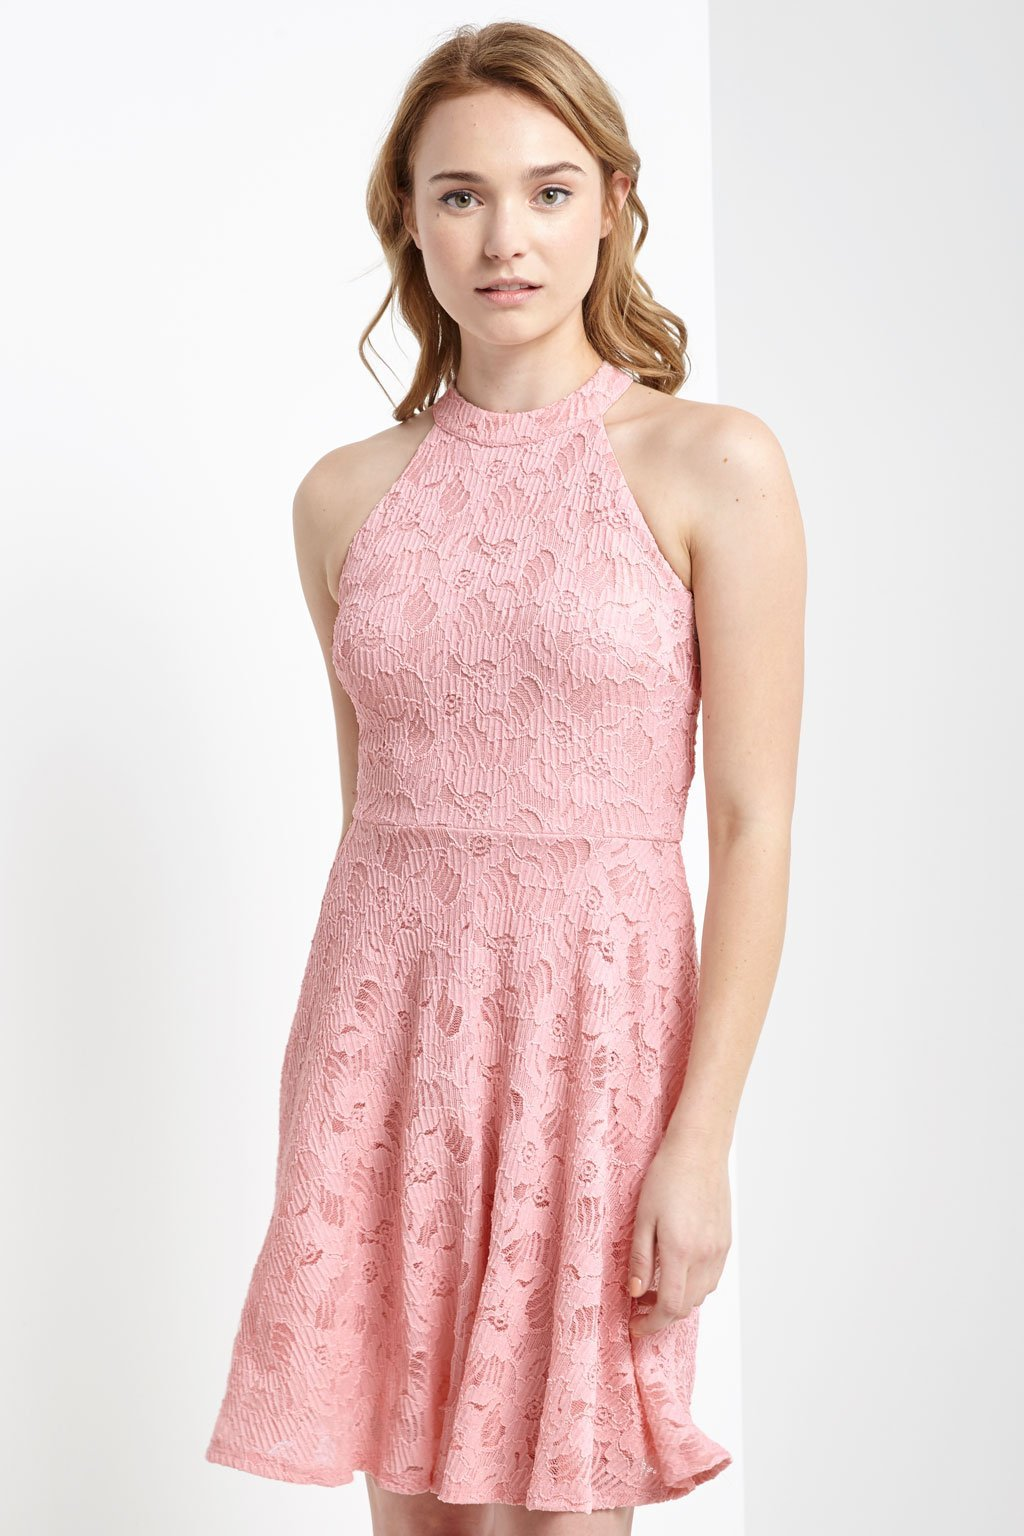 Poshsquare Dress S / Light Pink Fit and Flare Lace Halter Dress